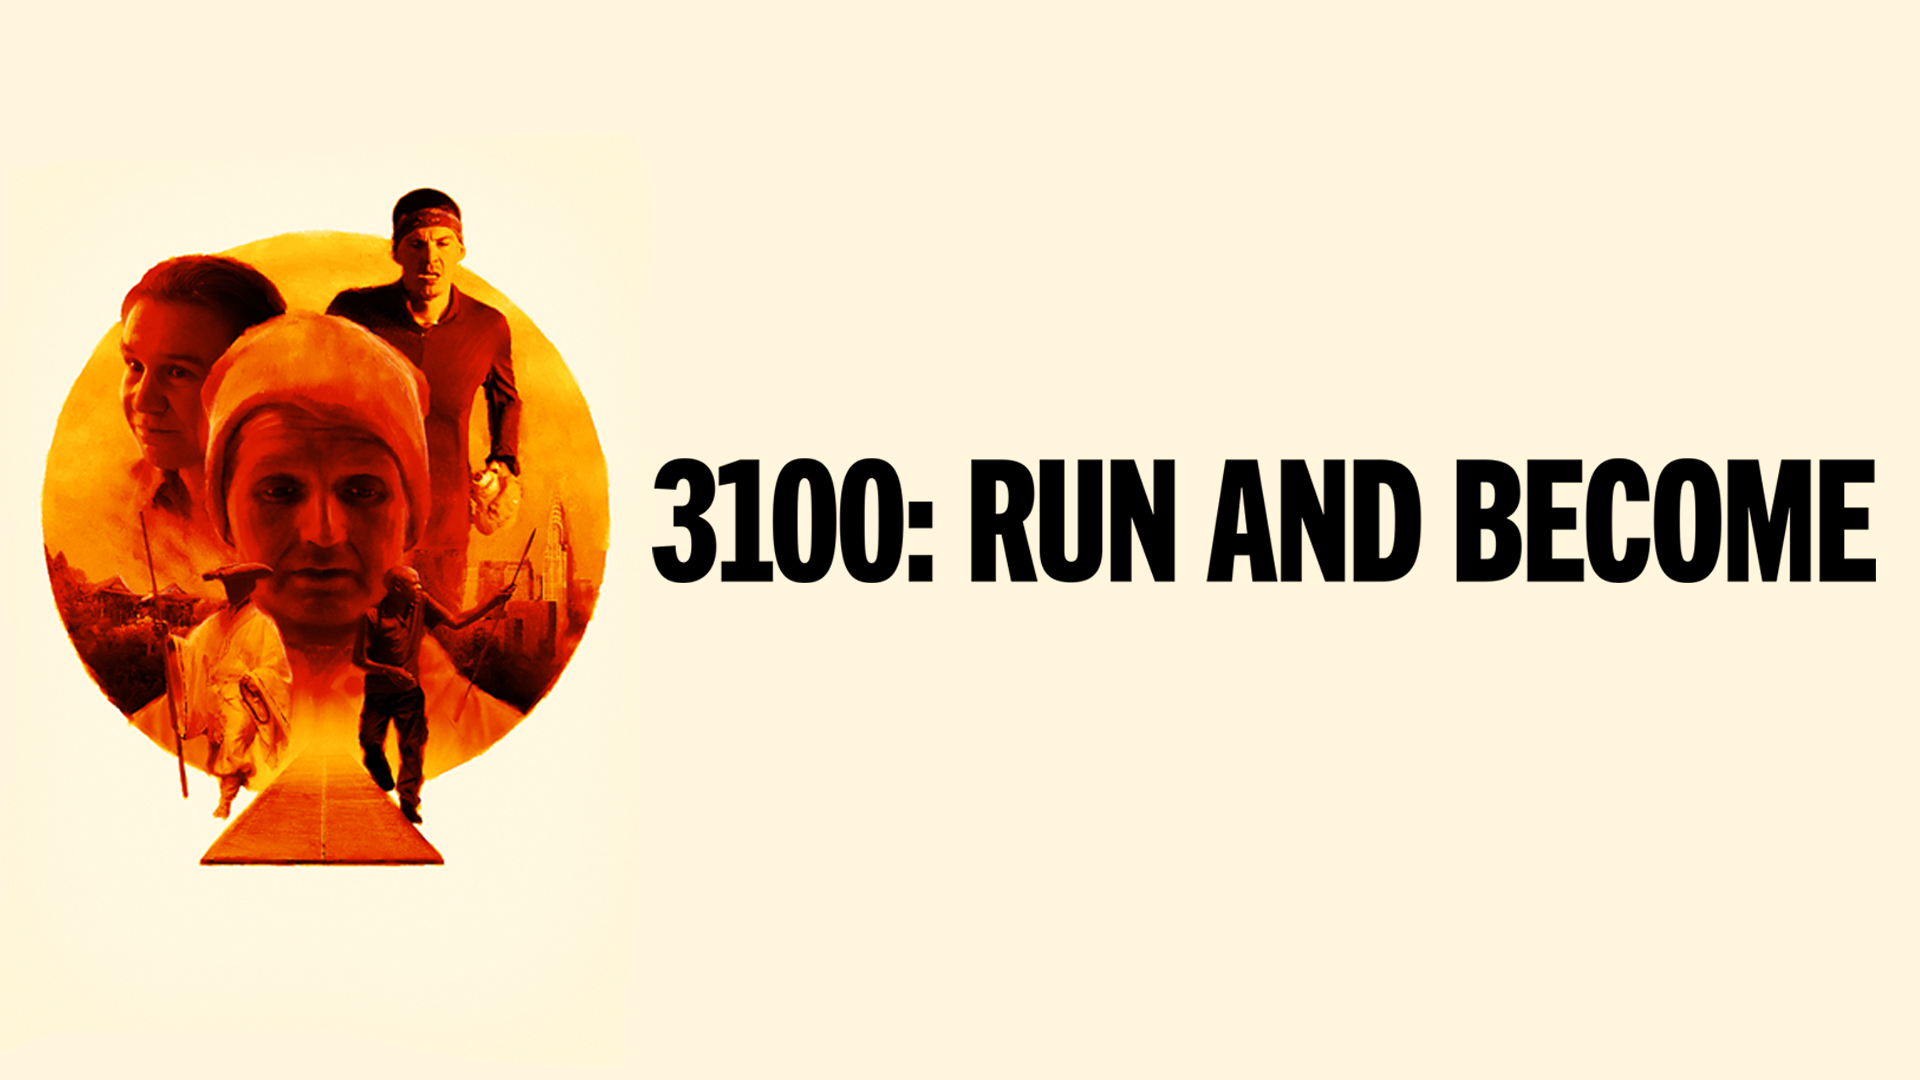 3100: Run and Become